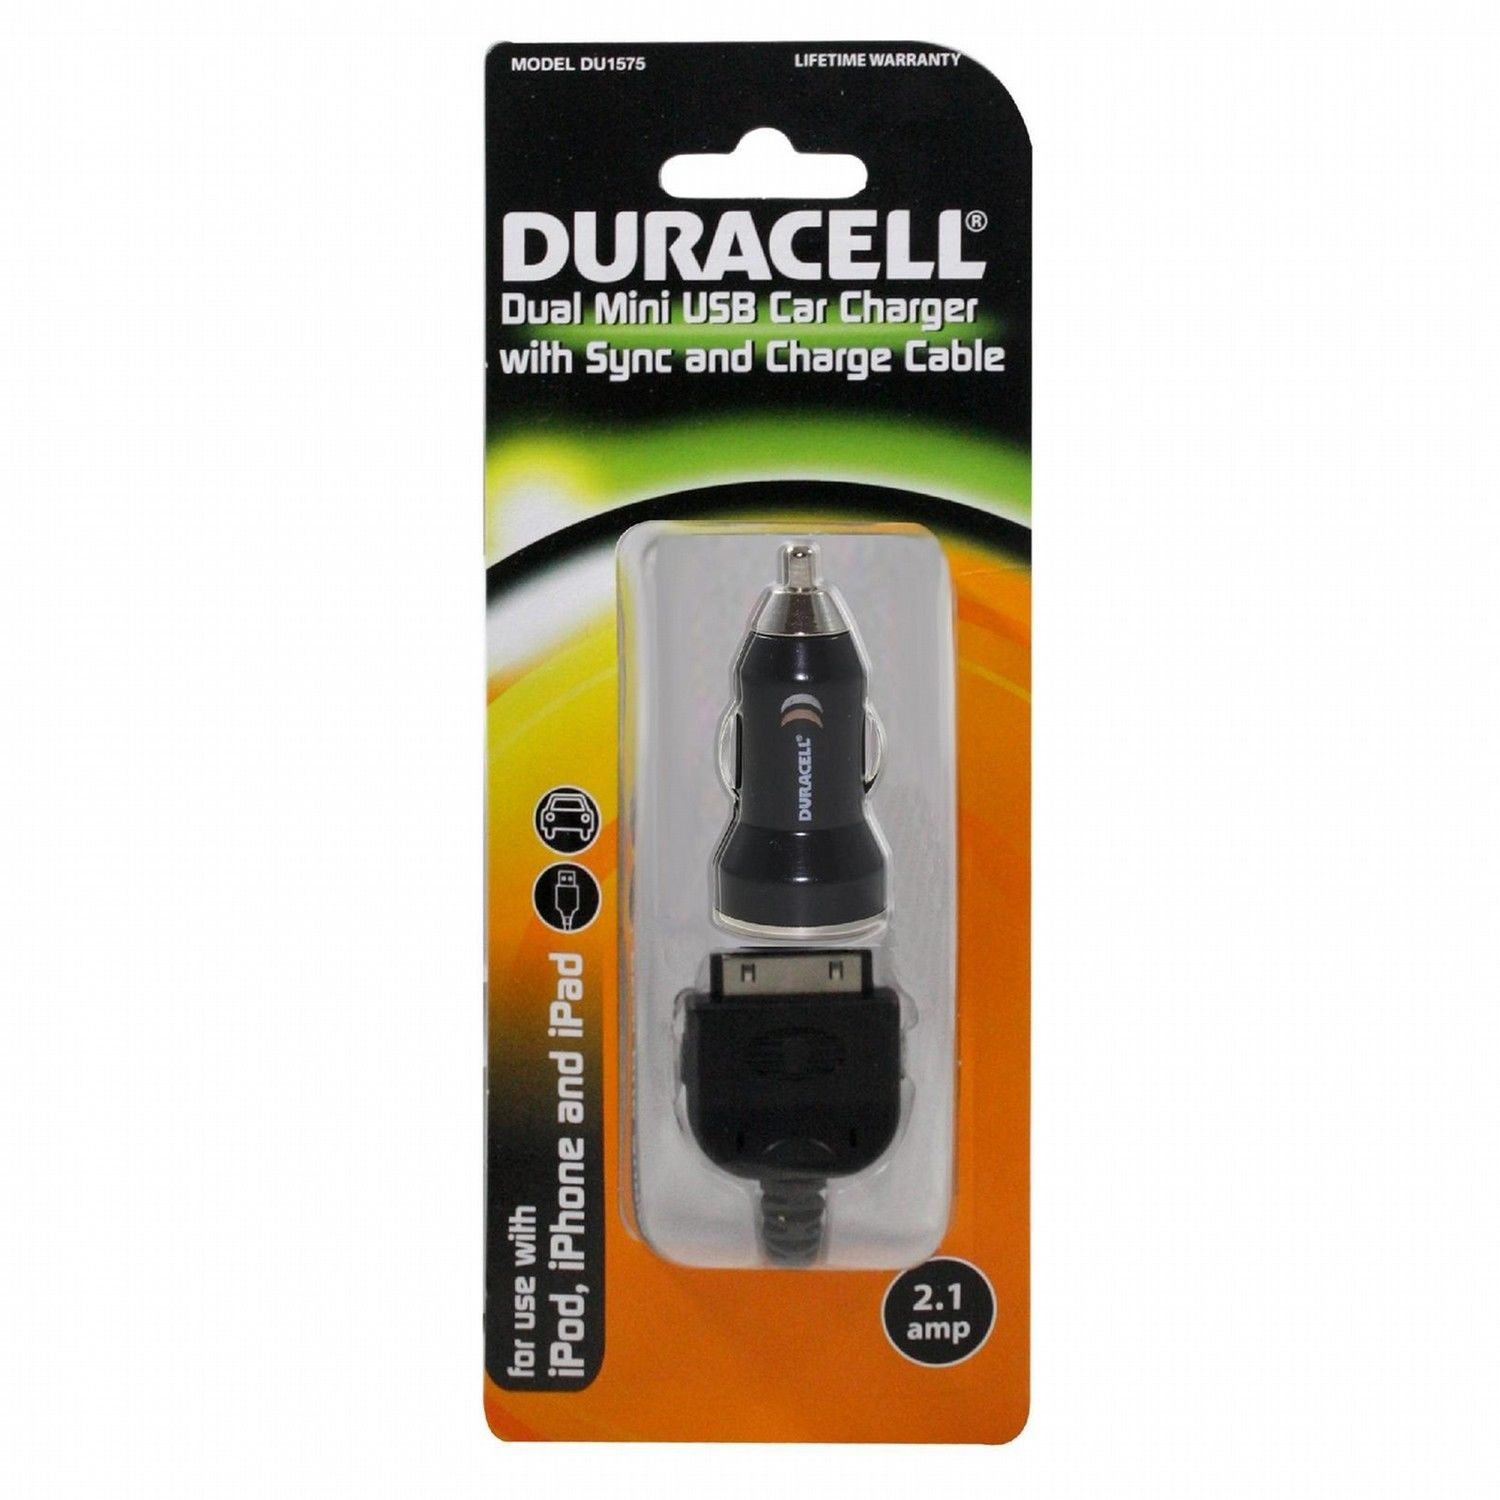 Duracell Dual USB Car DC Charger 2.1Amp With 30-Pin Cable - DU1575